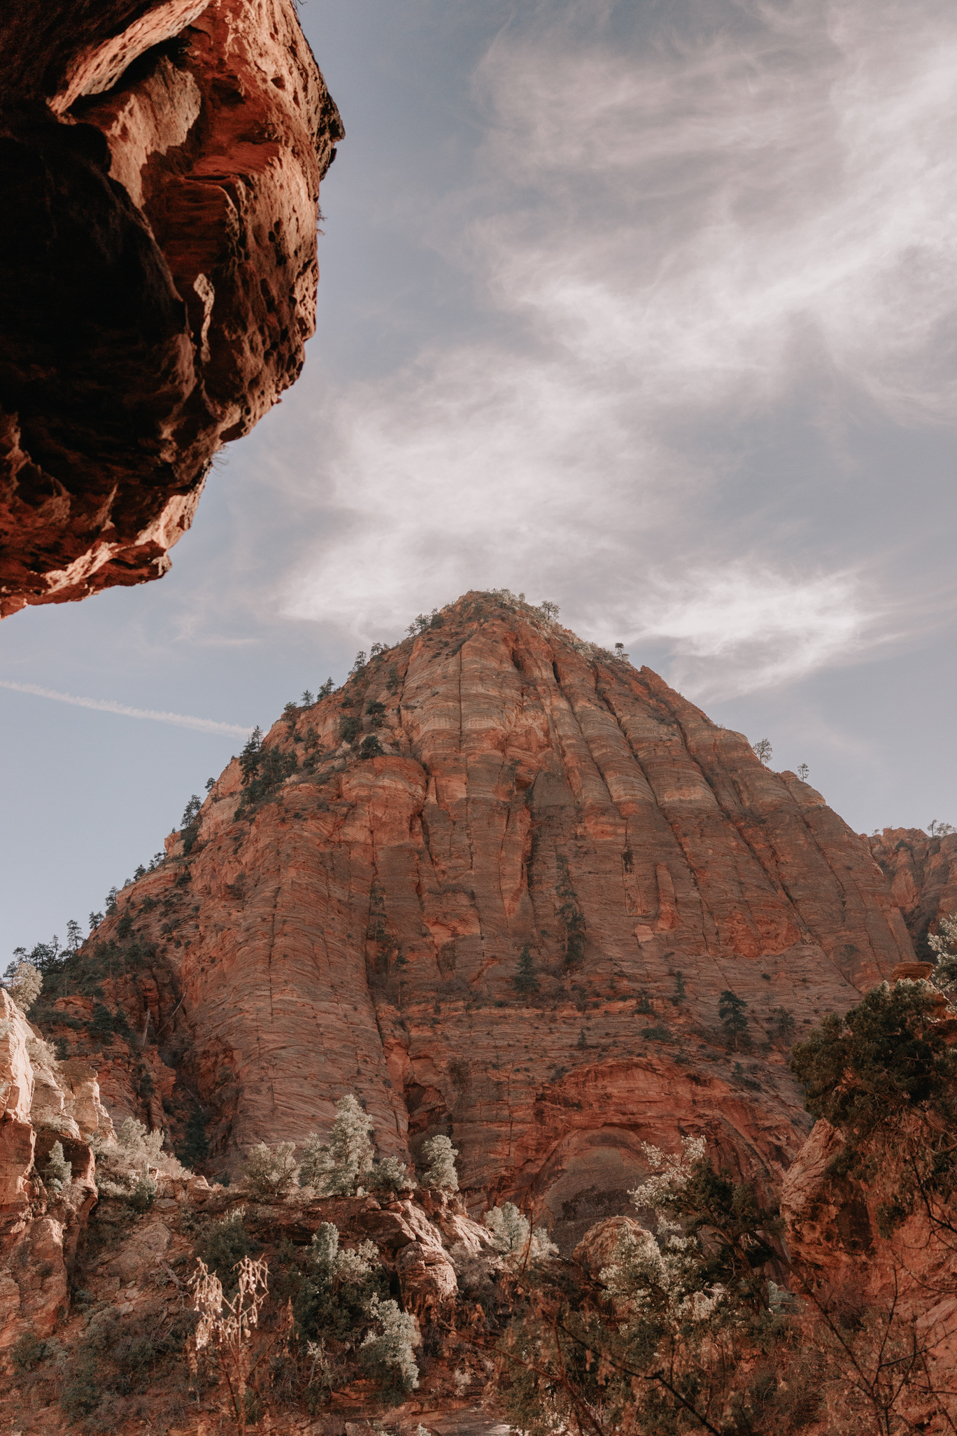 Zion National Park Overlook Trail